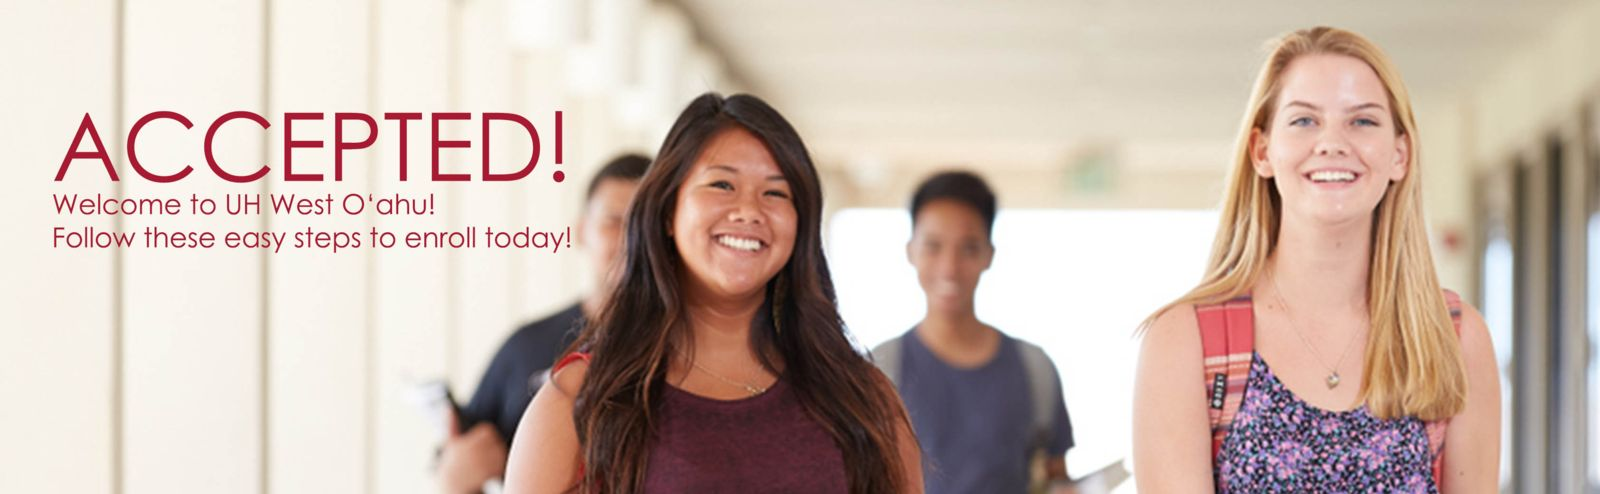 Accepted! Welcome to UH West Oahu! Follow these easy steps to enroll today!